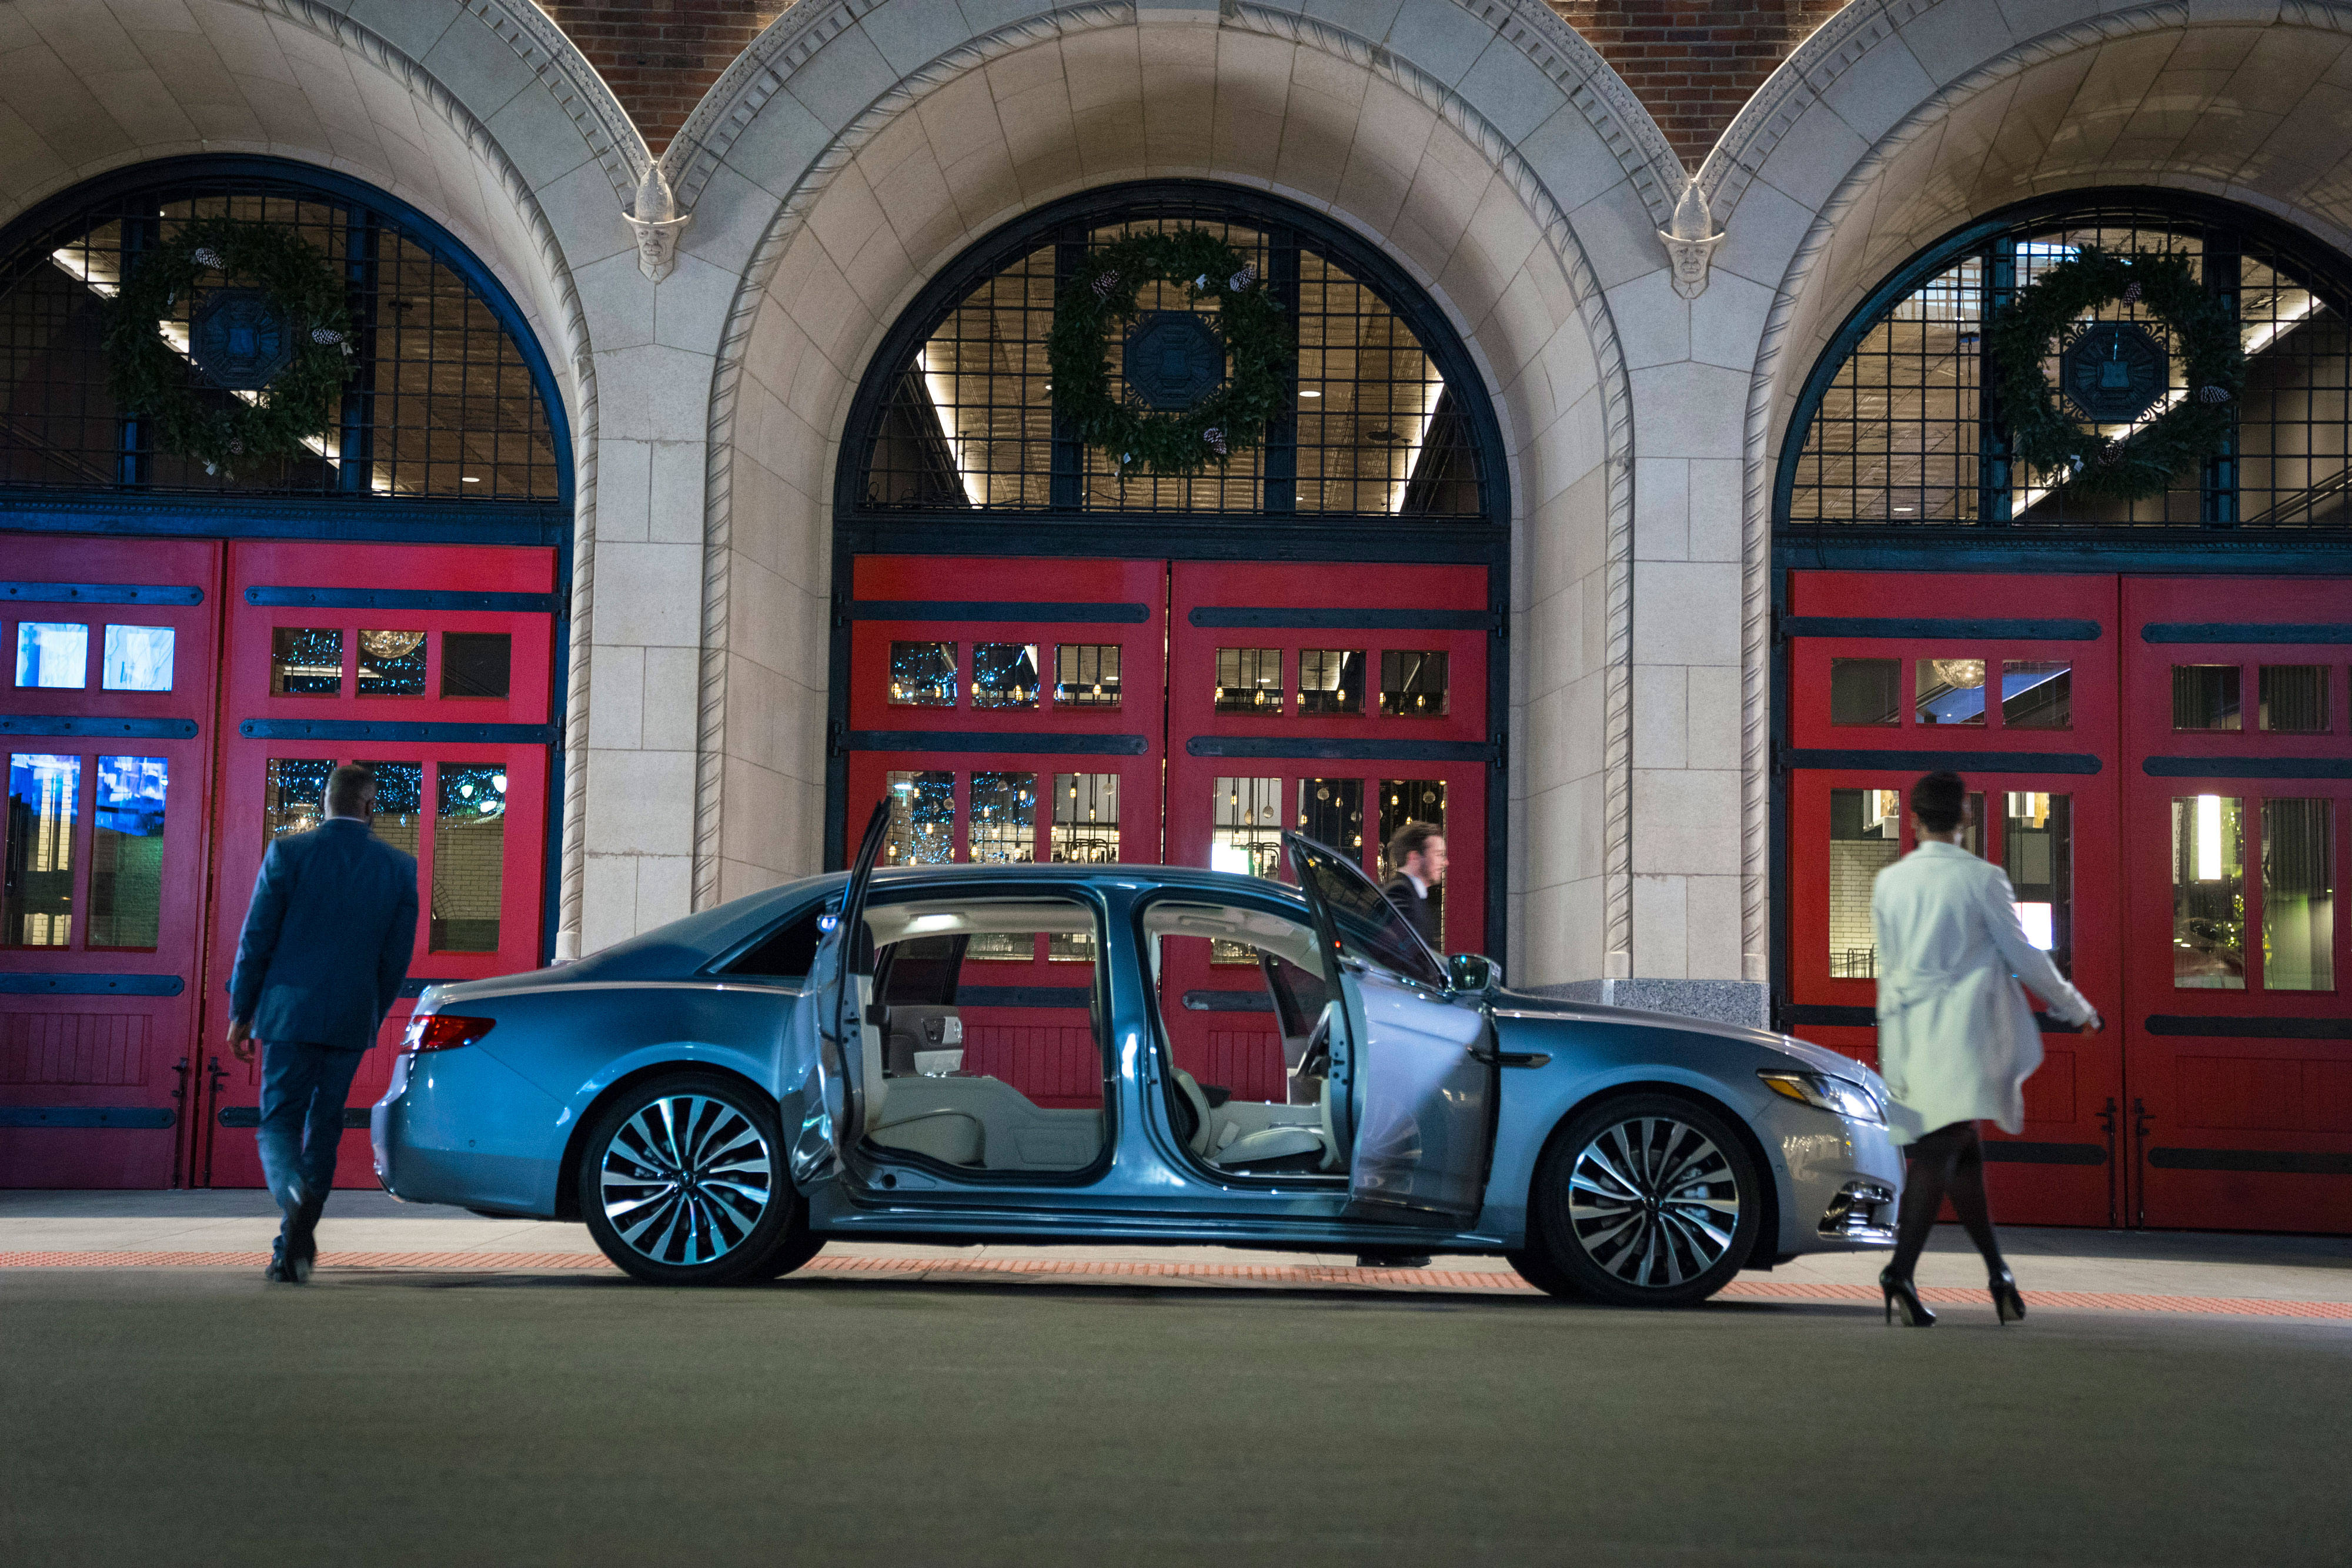 Lincoln continental 2019 80th suicide coach doors detroit firehouse